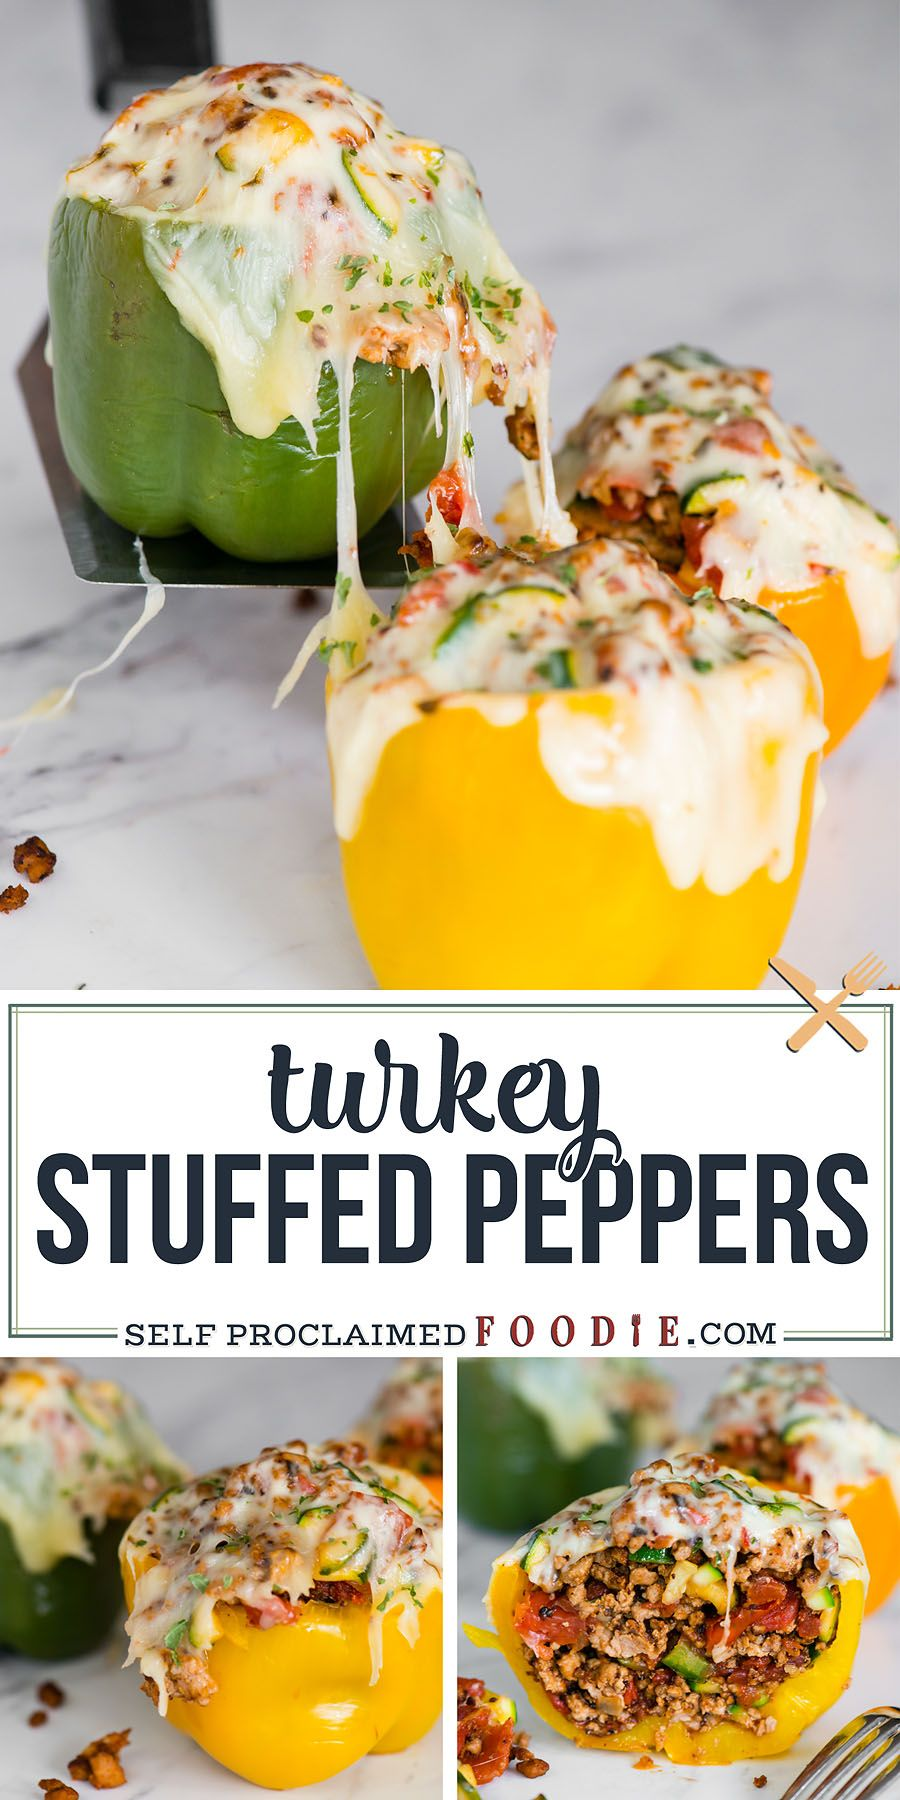 Ground Turkey Stuffed Peppers Recipe | Self Proclaimed Foodie